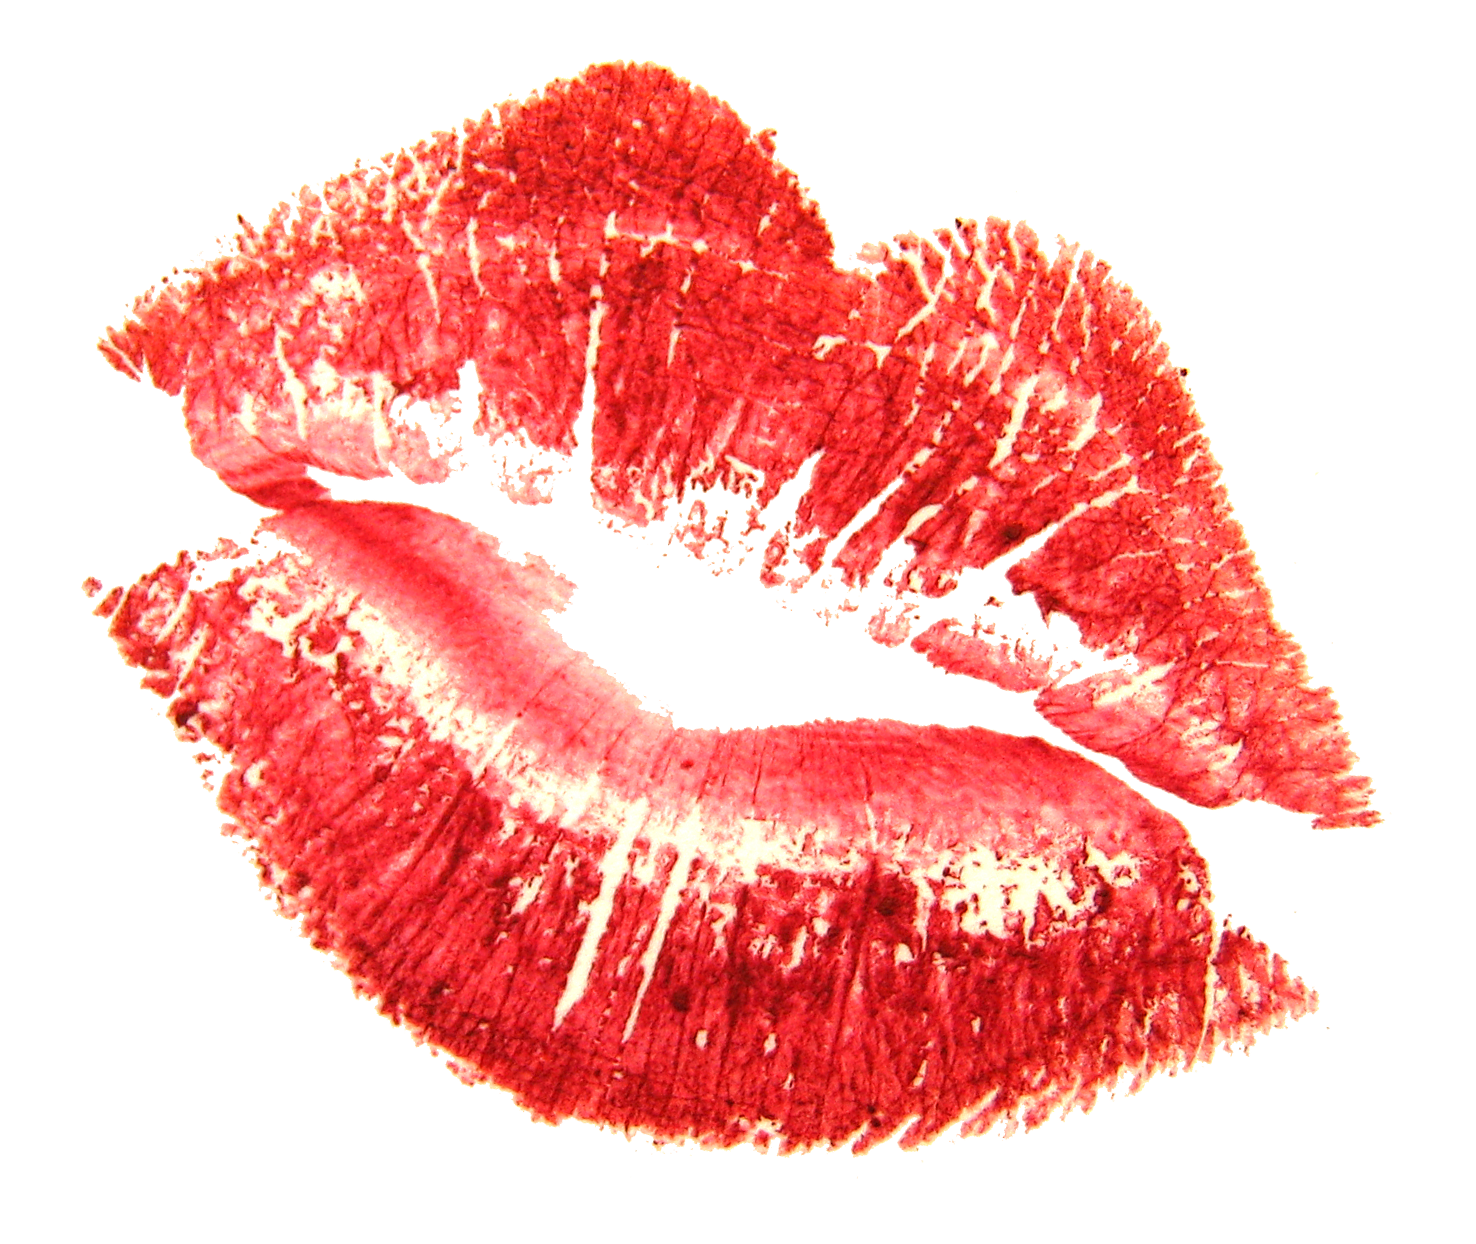 Kiss clipart smooch. Lipstick google search pinterest